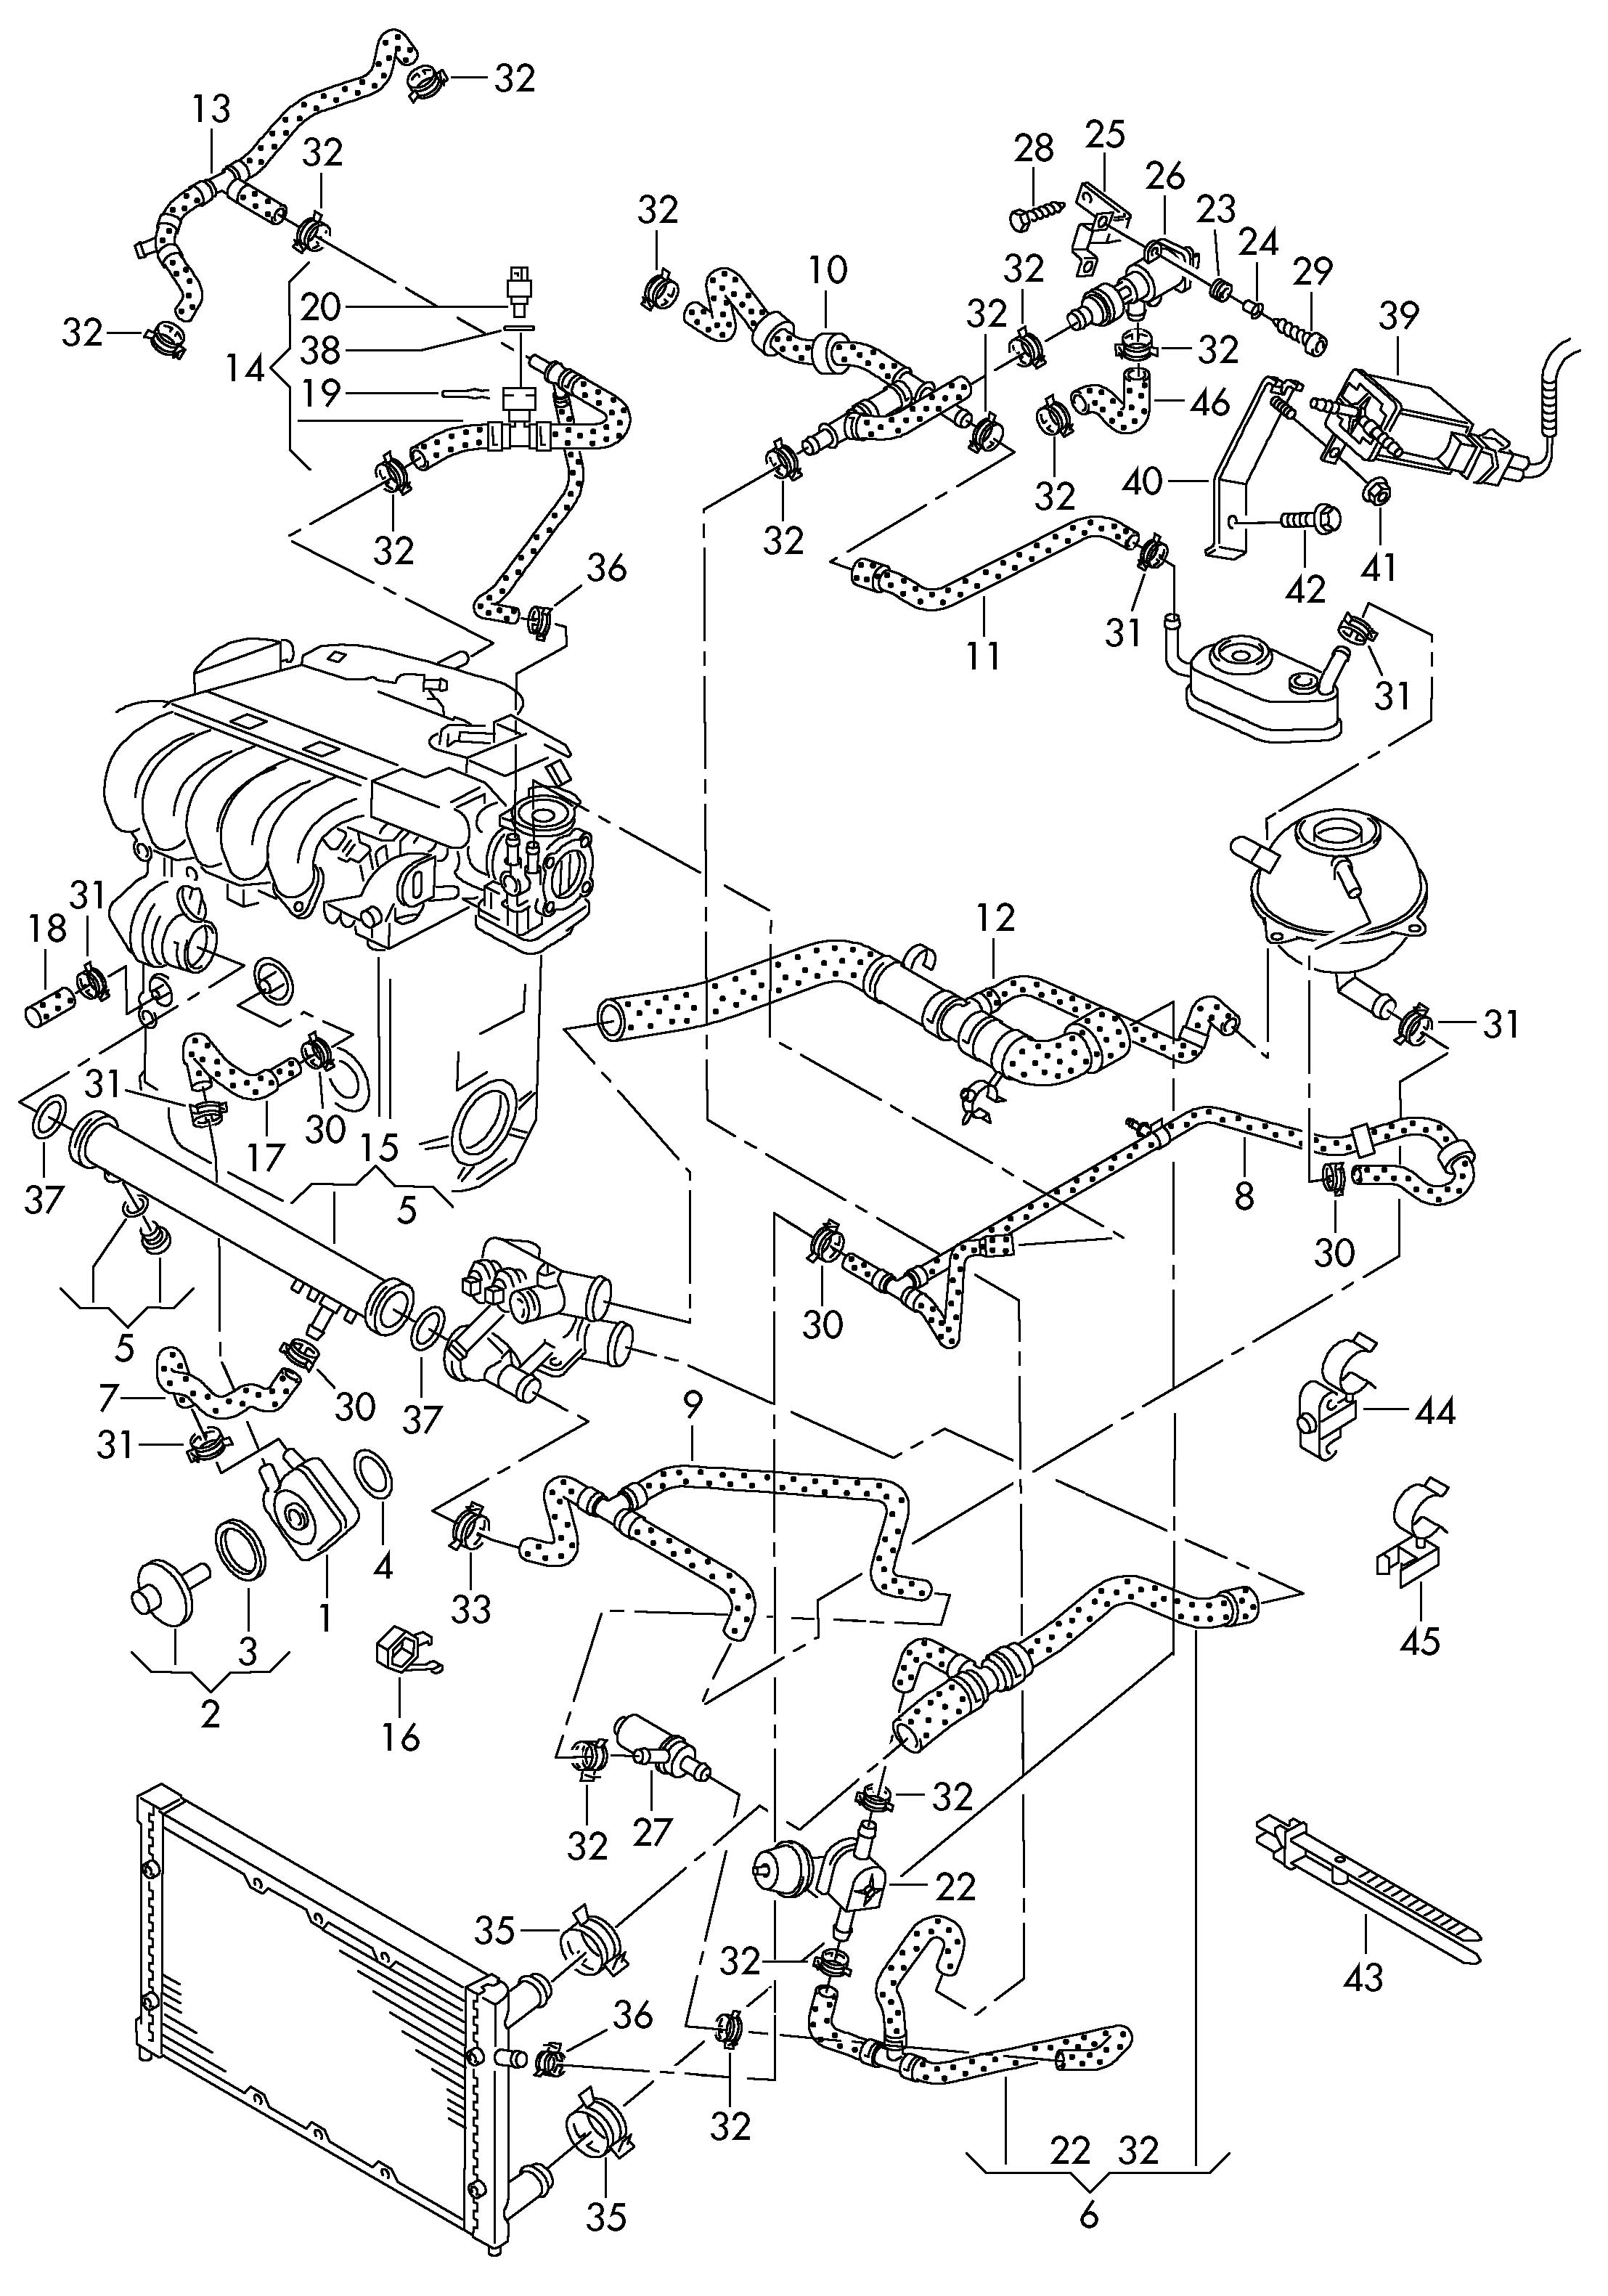 vw rabbit 2 5 engine diagram  diagram  auto wiring diagram